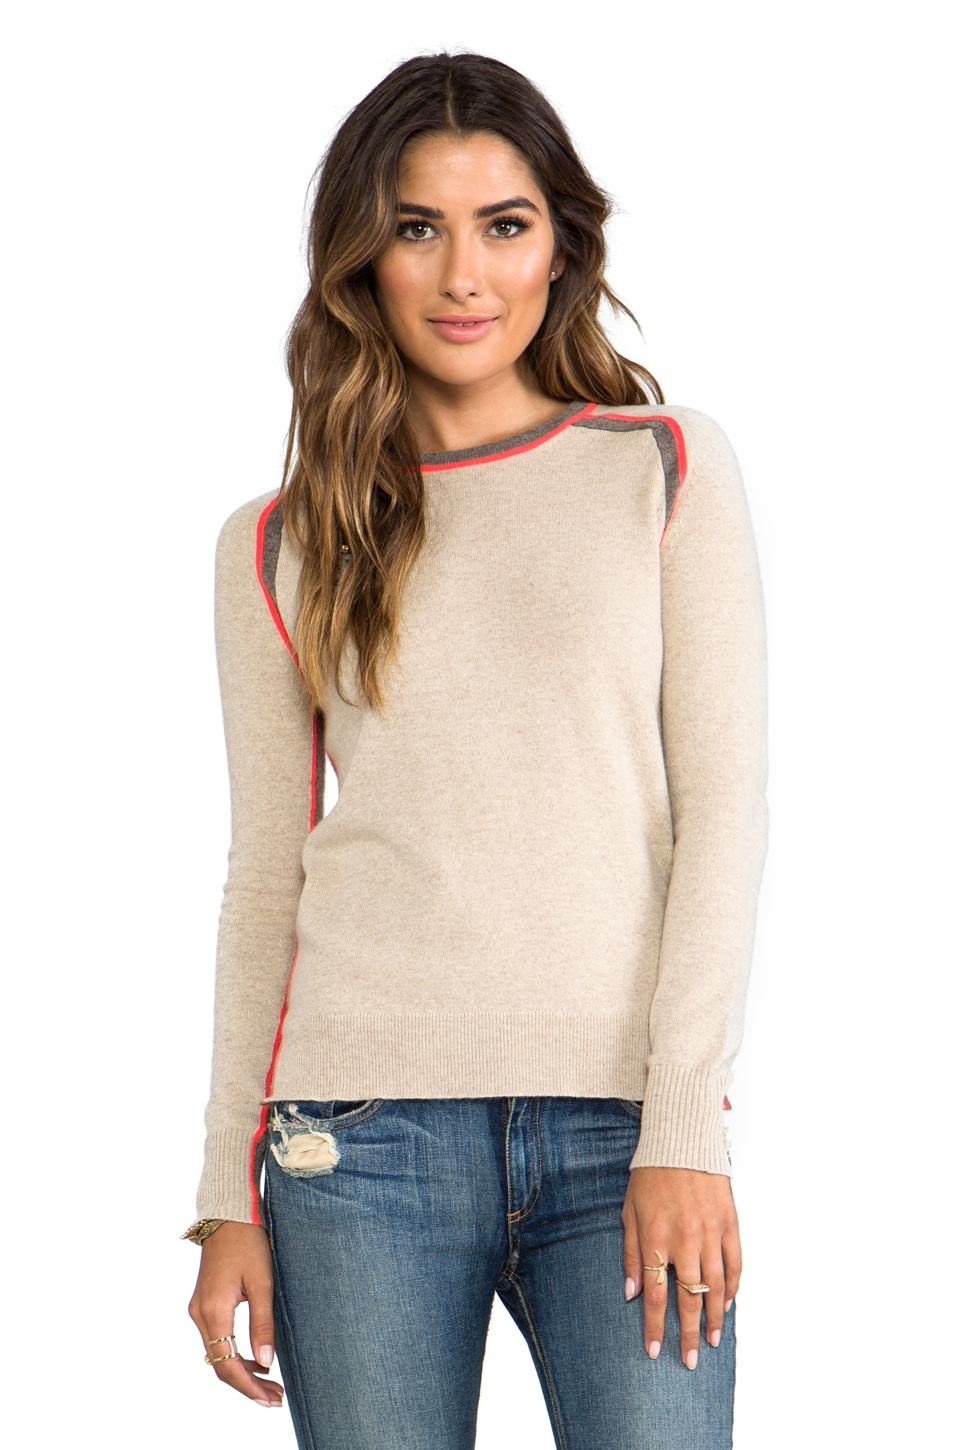 Autumn Cashmere Hi Lo Crew With Racing Stripes in Sandpaper/Rye/Flash